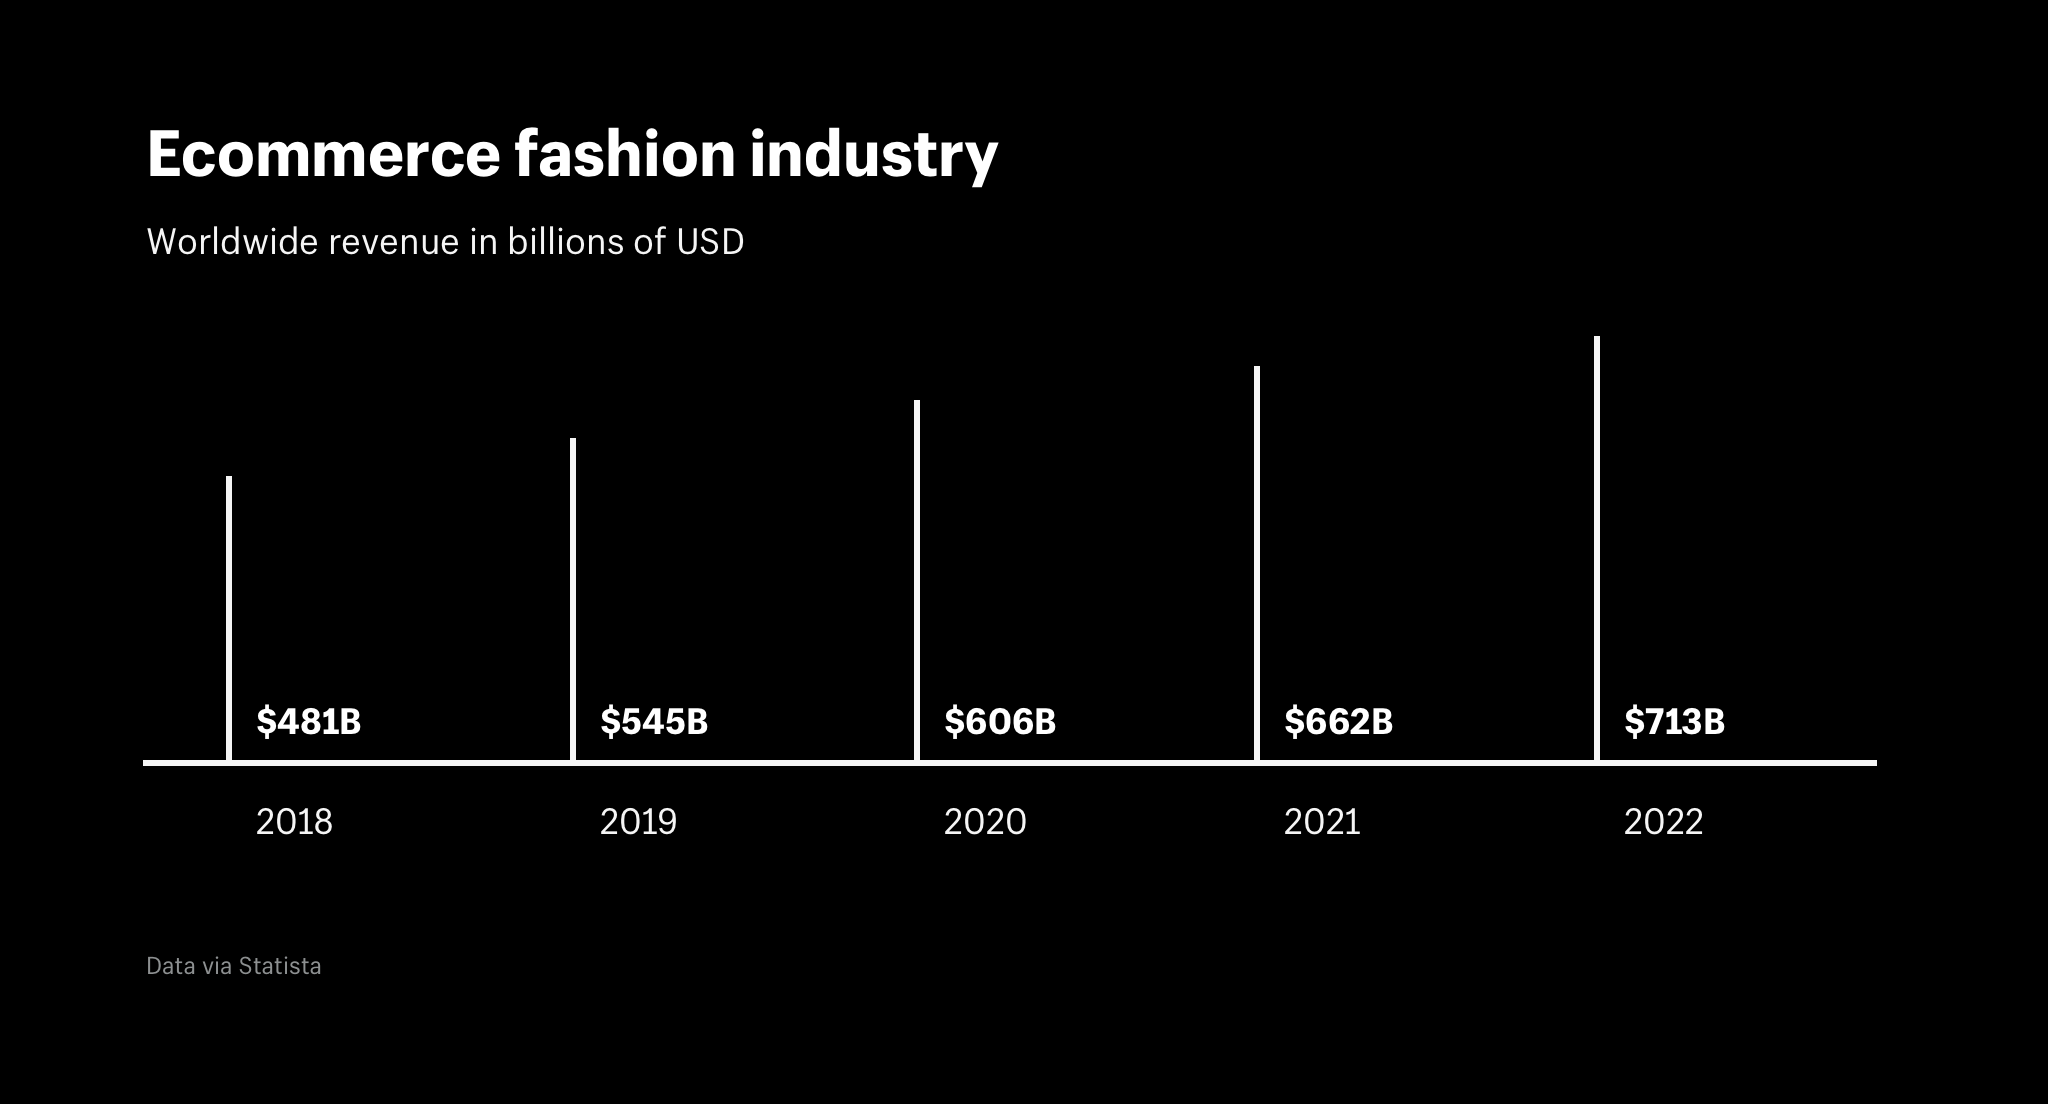 Ecommerce fashion industry worldwide revenue